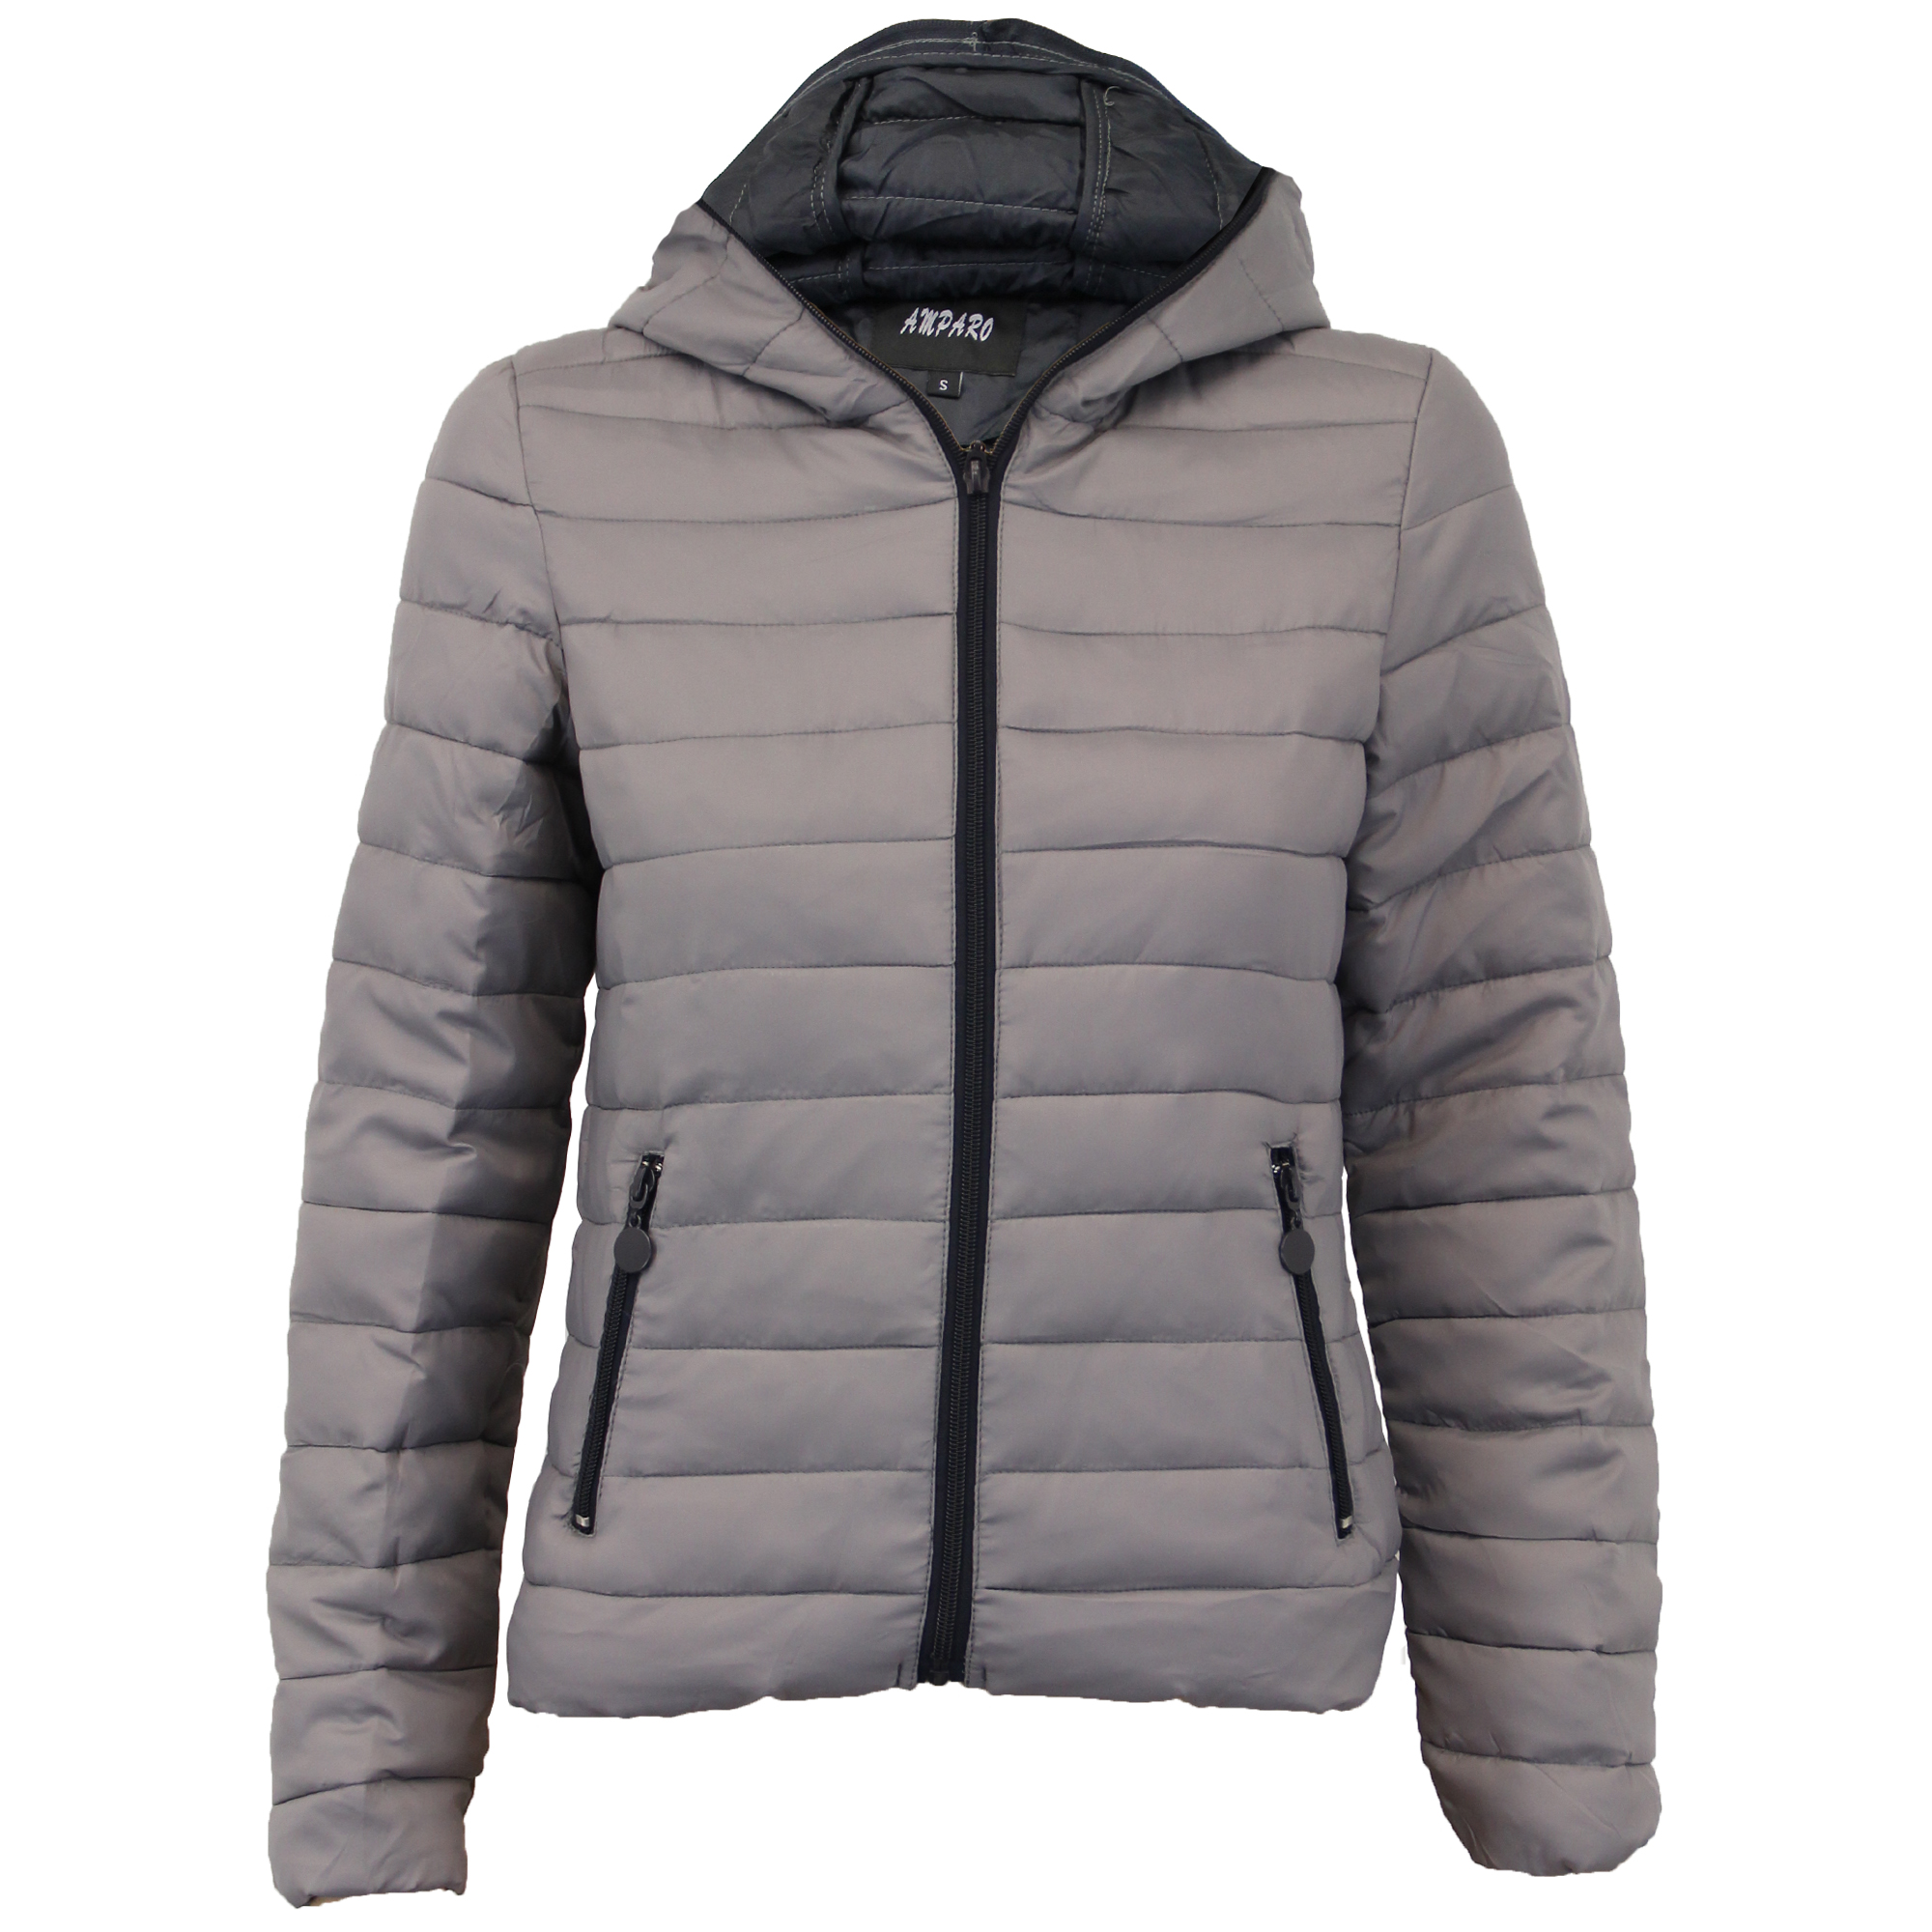 Padded Women's Coats. Our selection of padded coats for women is perfect for keeping you warm in colder months. With ultra-lightweight feather and down finish and a showerproof outer – our padded women's coats will keep you warm, dry and comfortable in harsher conditions.